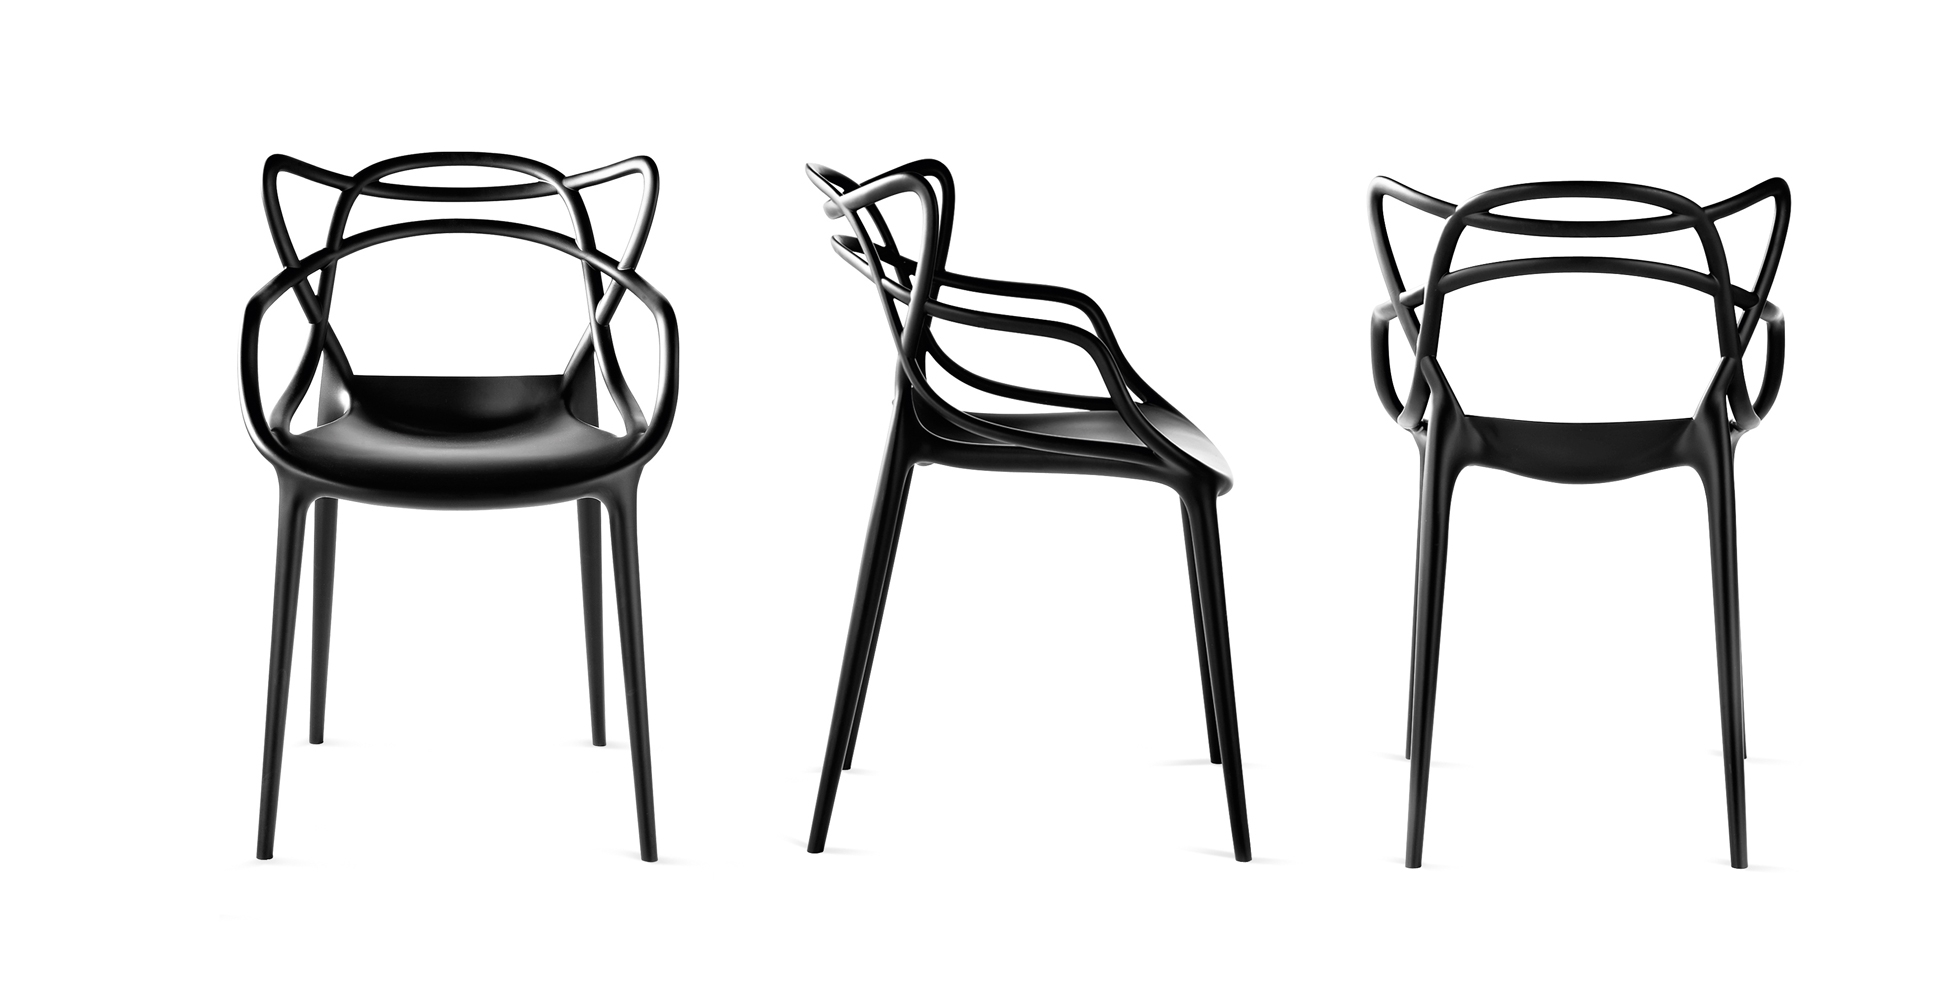 la chaise masters de philippe starck guten morgwen. Black Bedroom Furniture Sets. Home Design Ideas